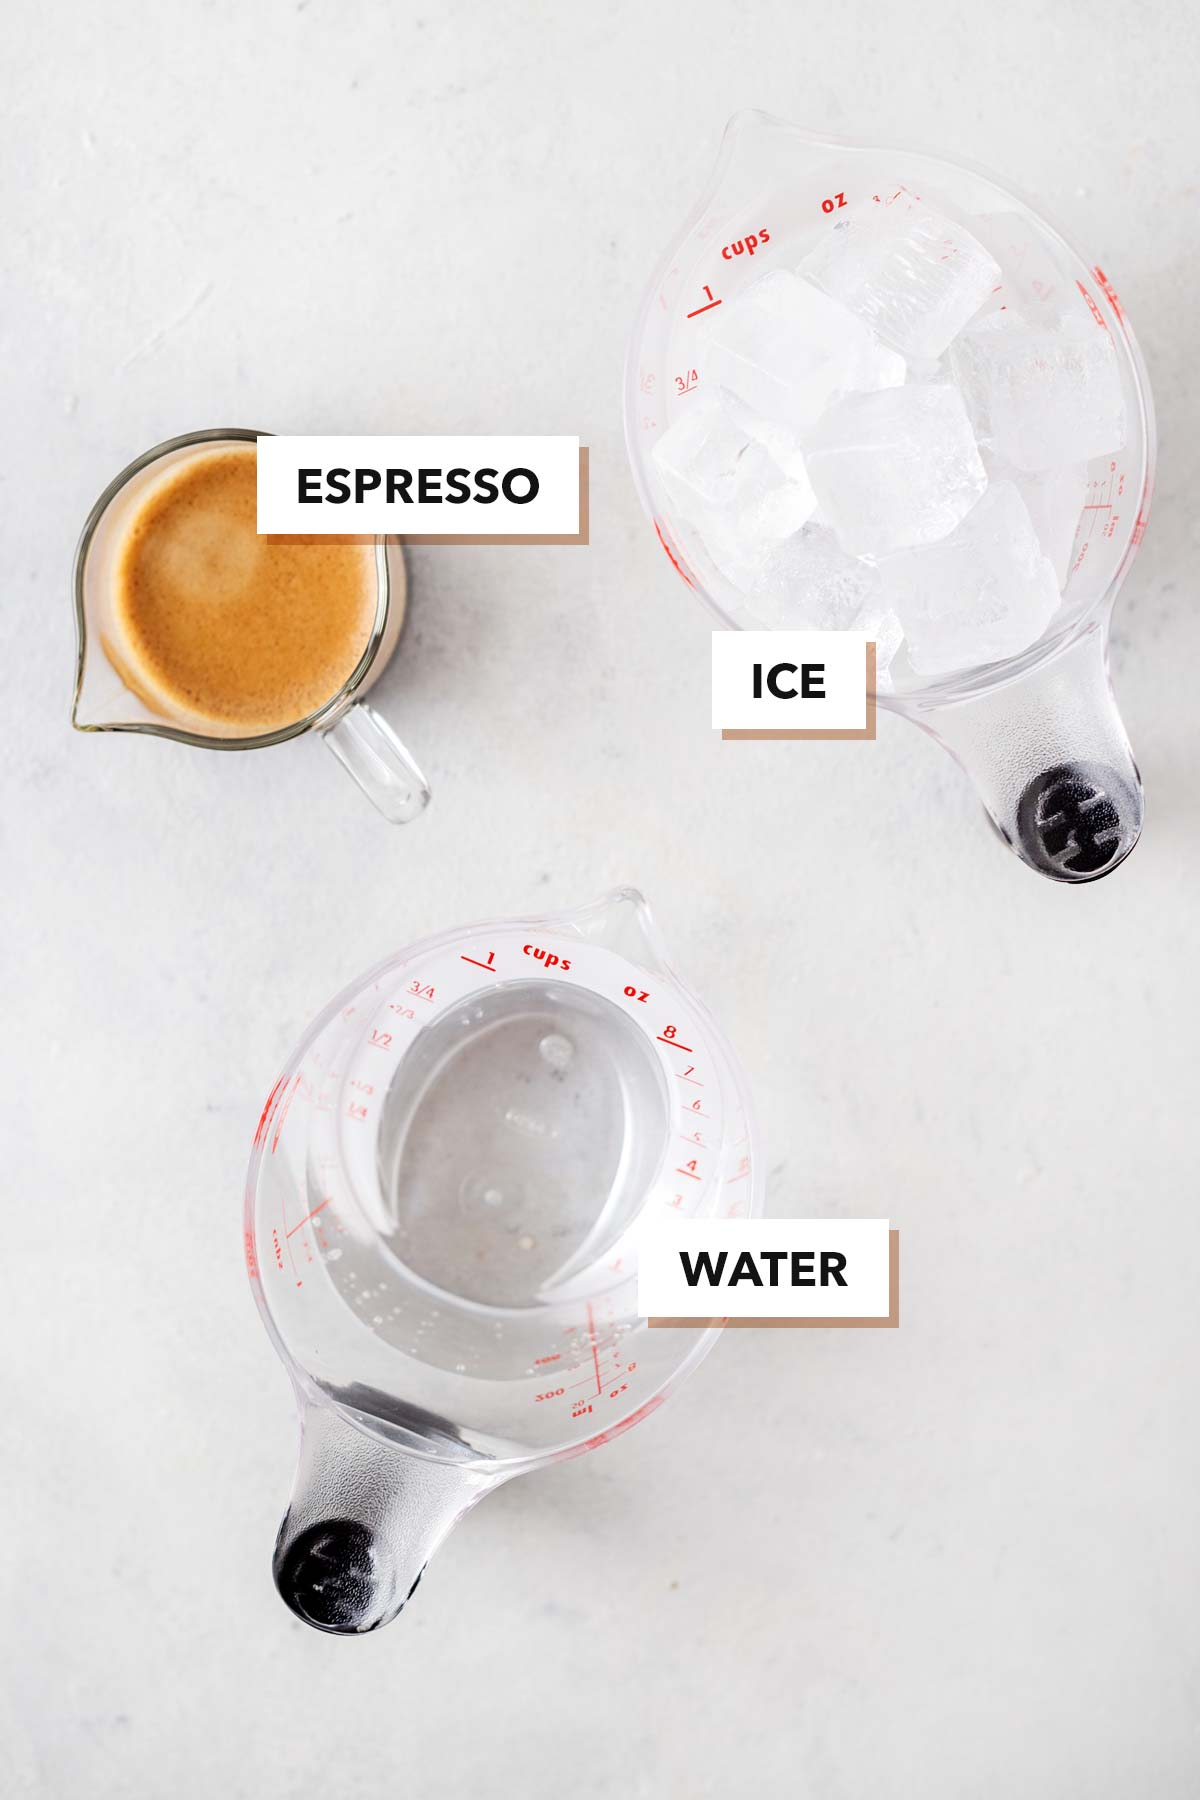 Iced Americano ingredients.